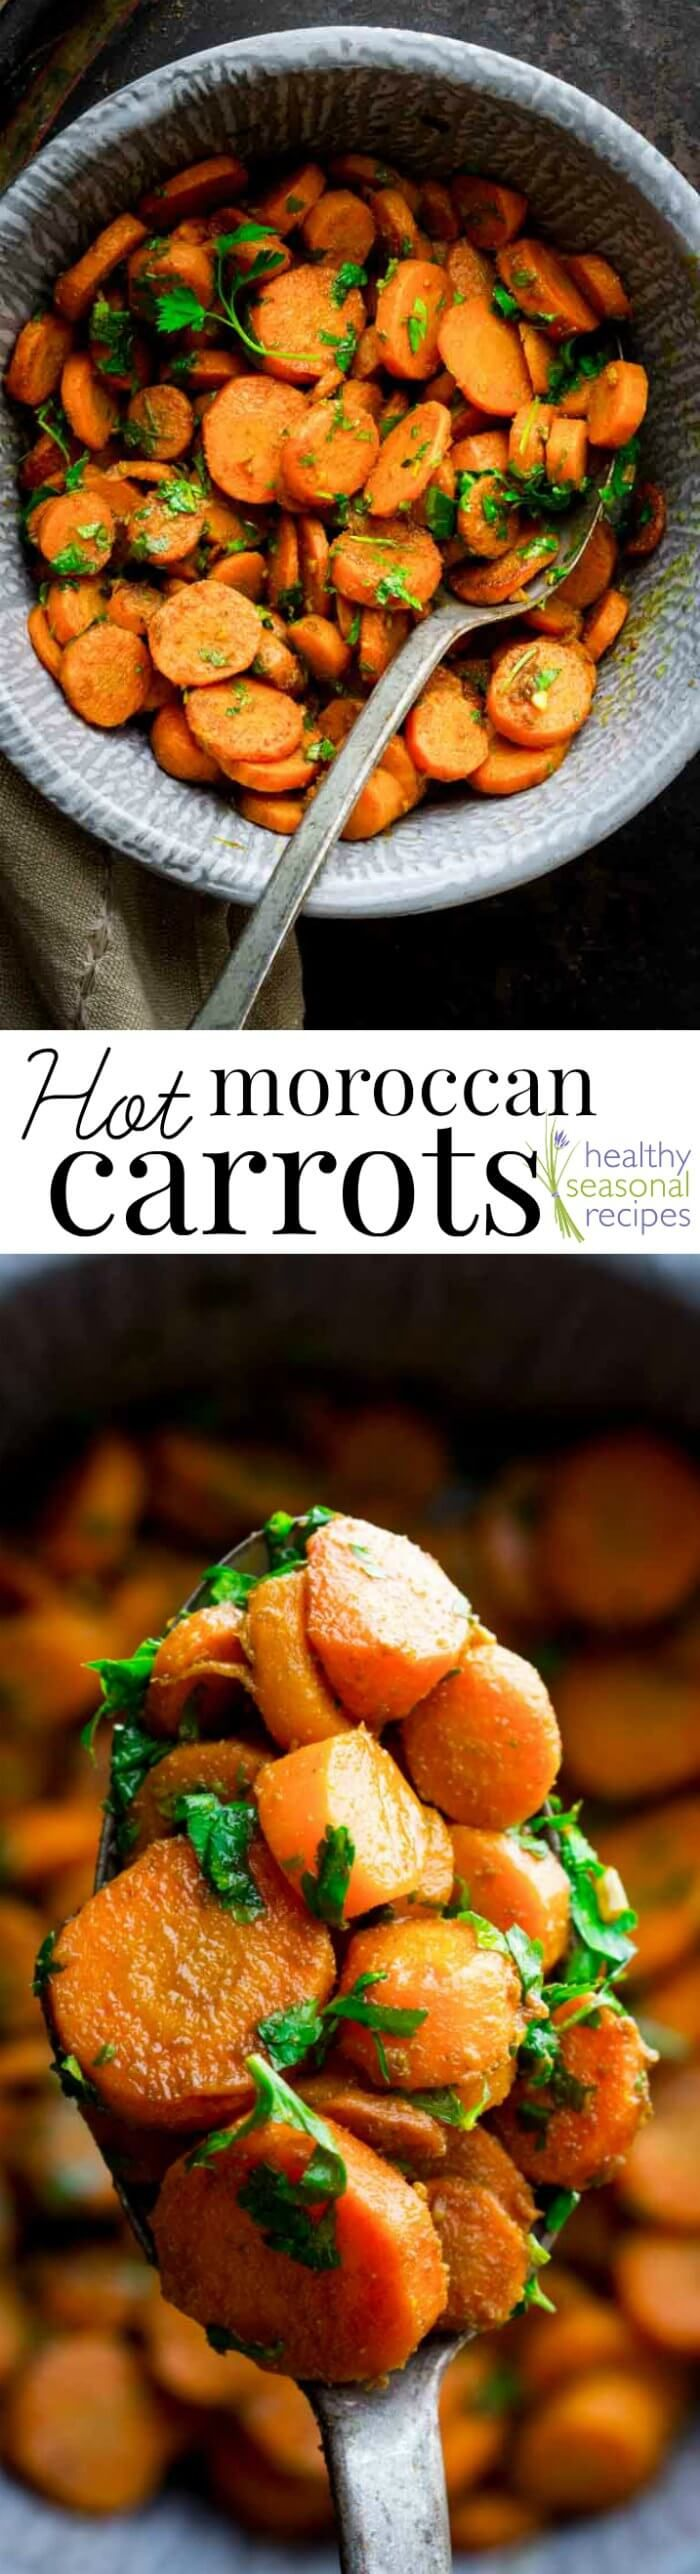 Hot Moroccan Carrots, with Cumin, Turmeric, Garlic and Lemon. Plus a ton of parsley. They are served hot right out of the skillet with a spicy kick from Harissa! By Healthy Seasonal Recipes @healthyseasonal